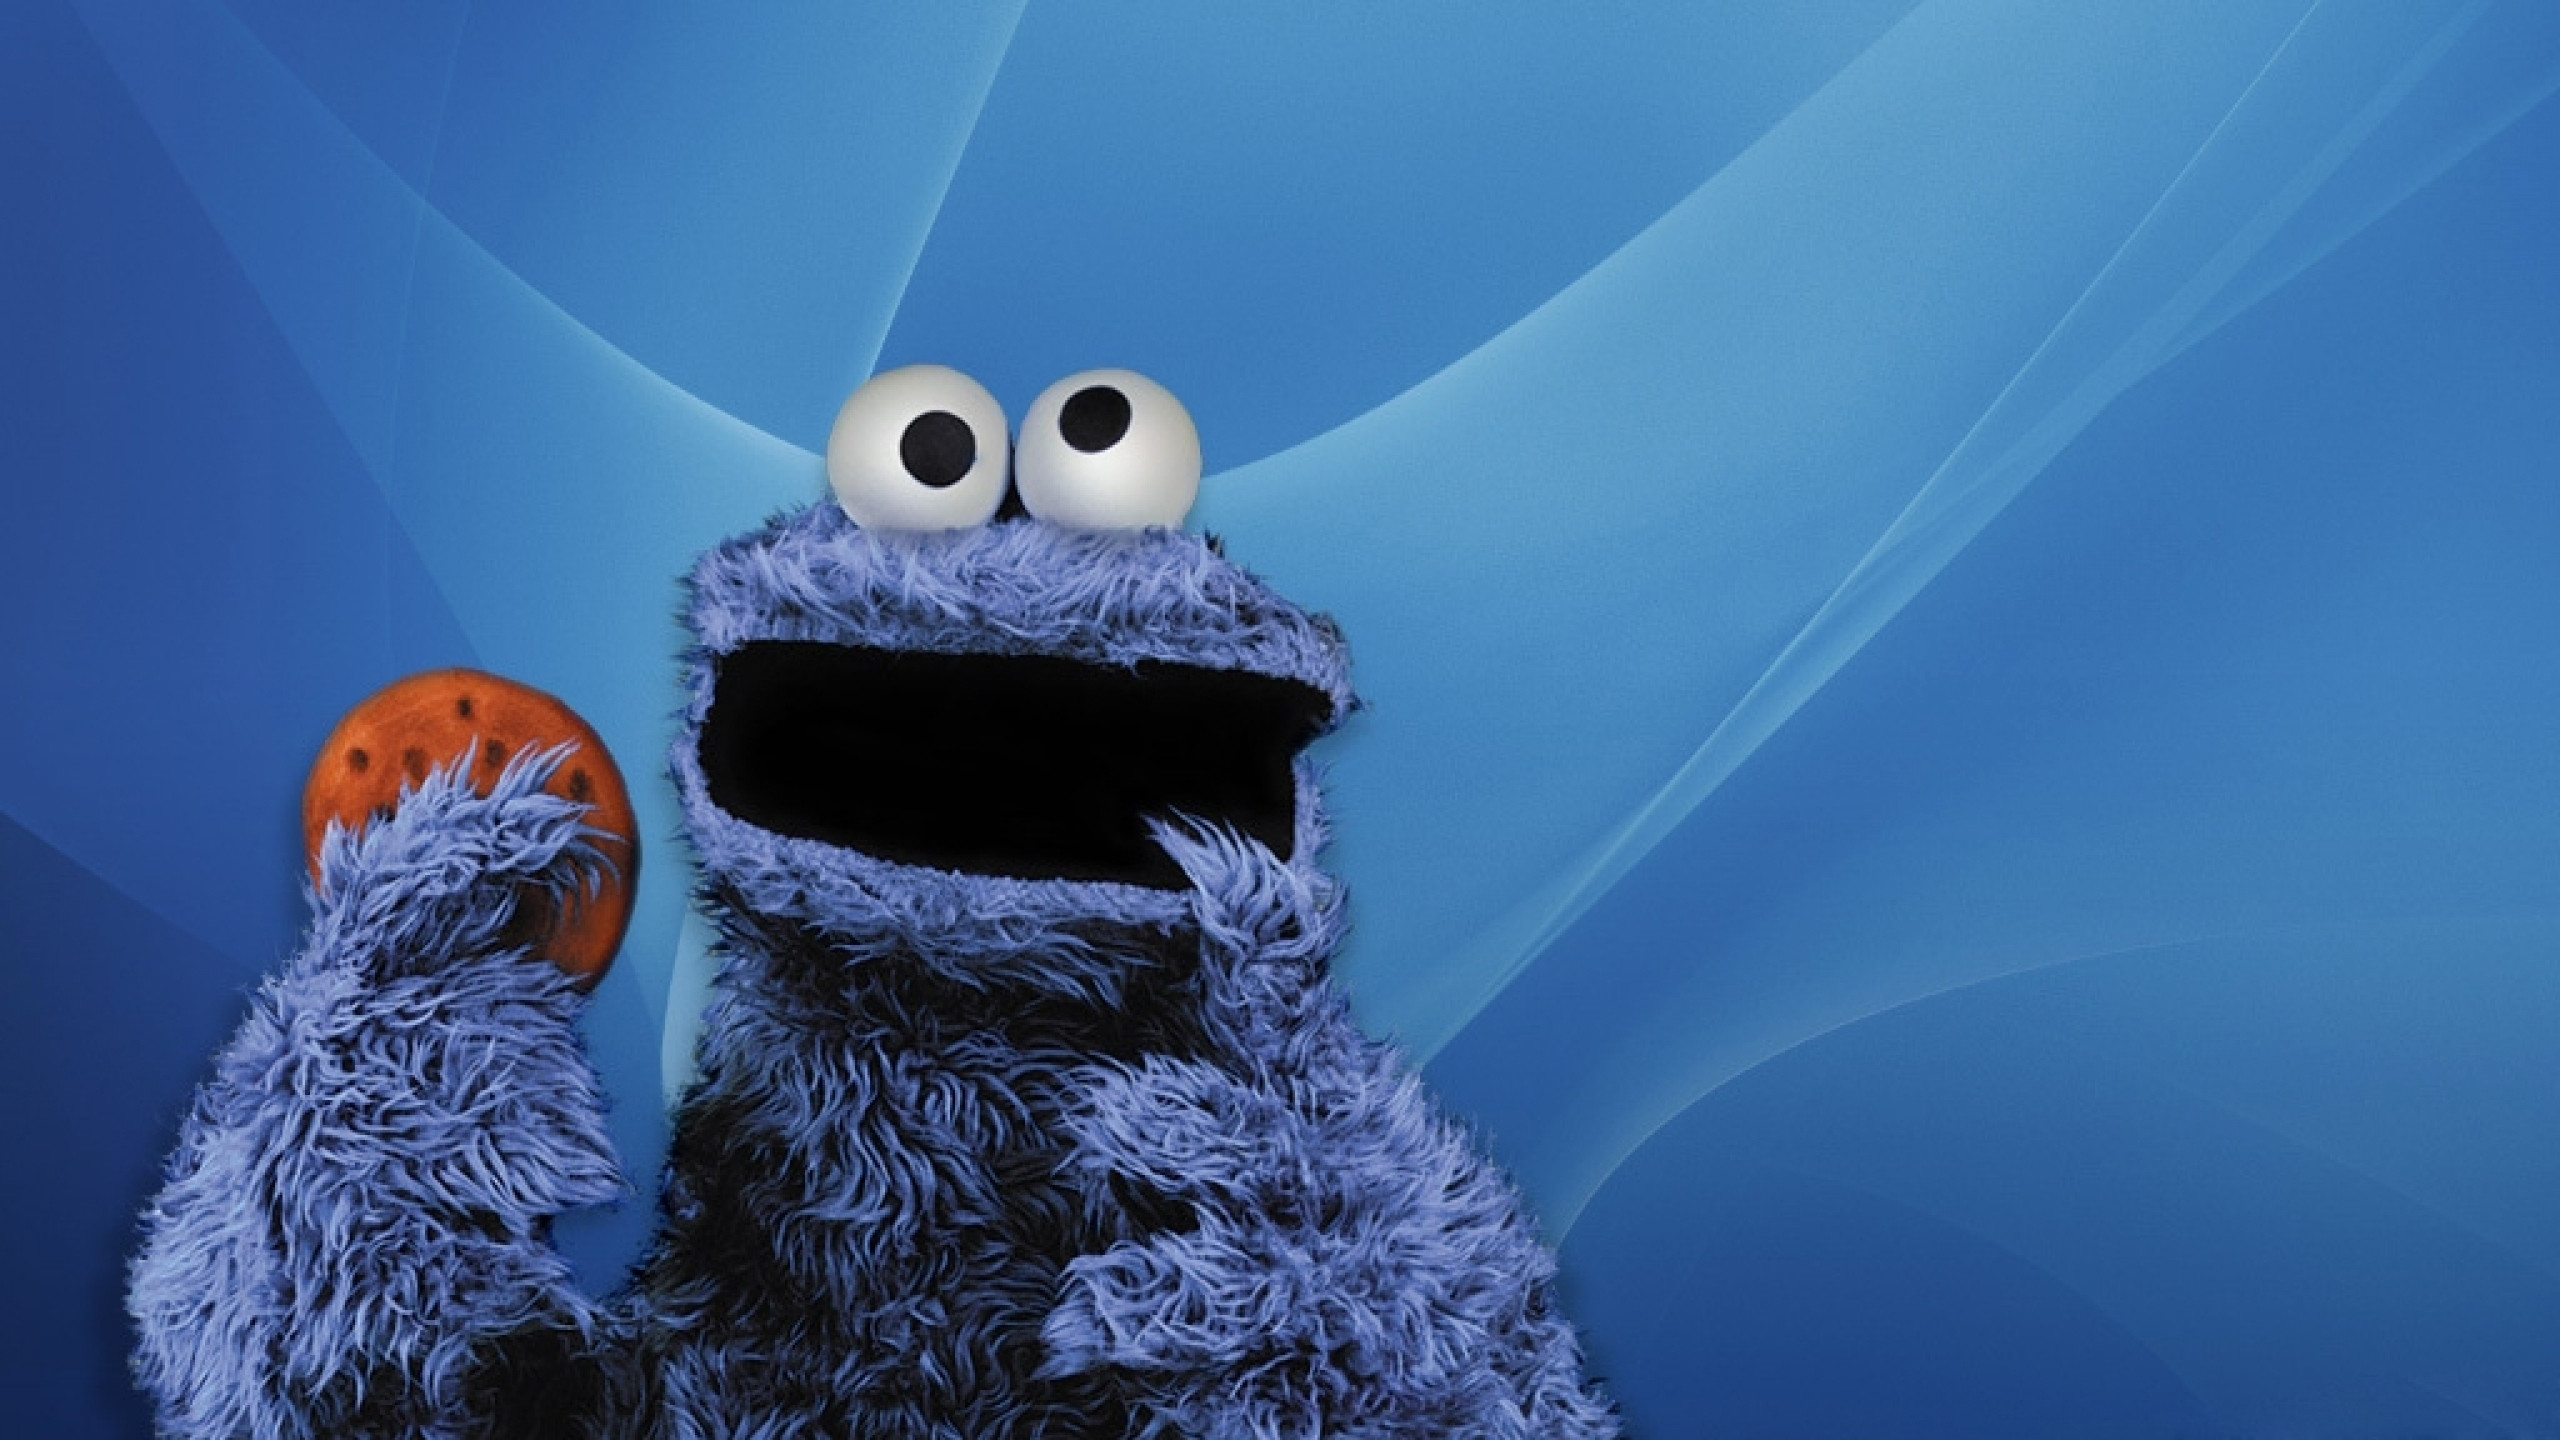 2560x1440 Cookie Monster Wallpapers Group